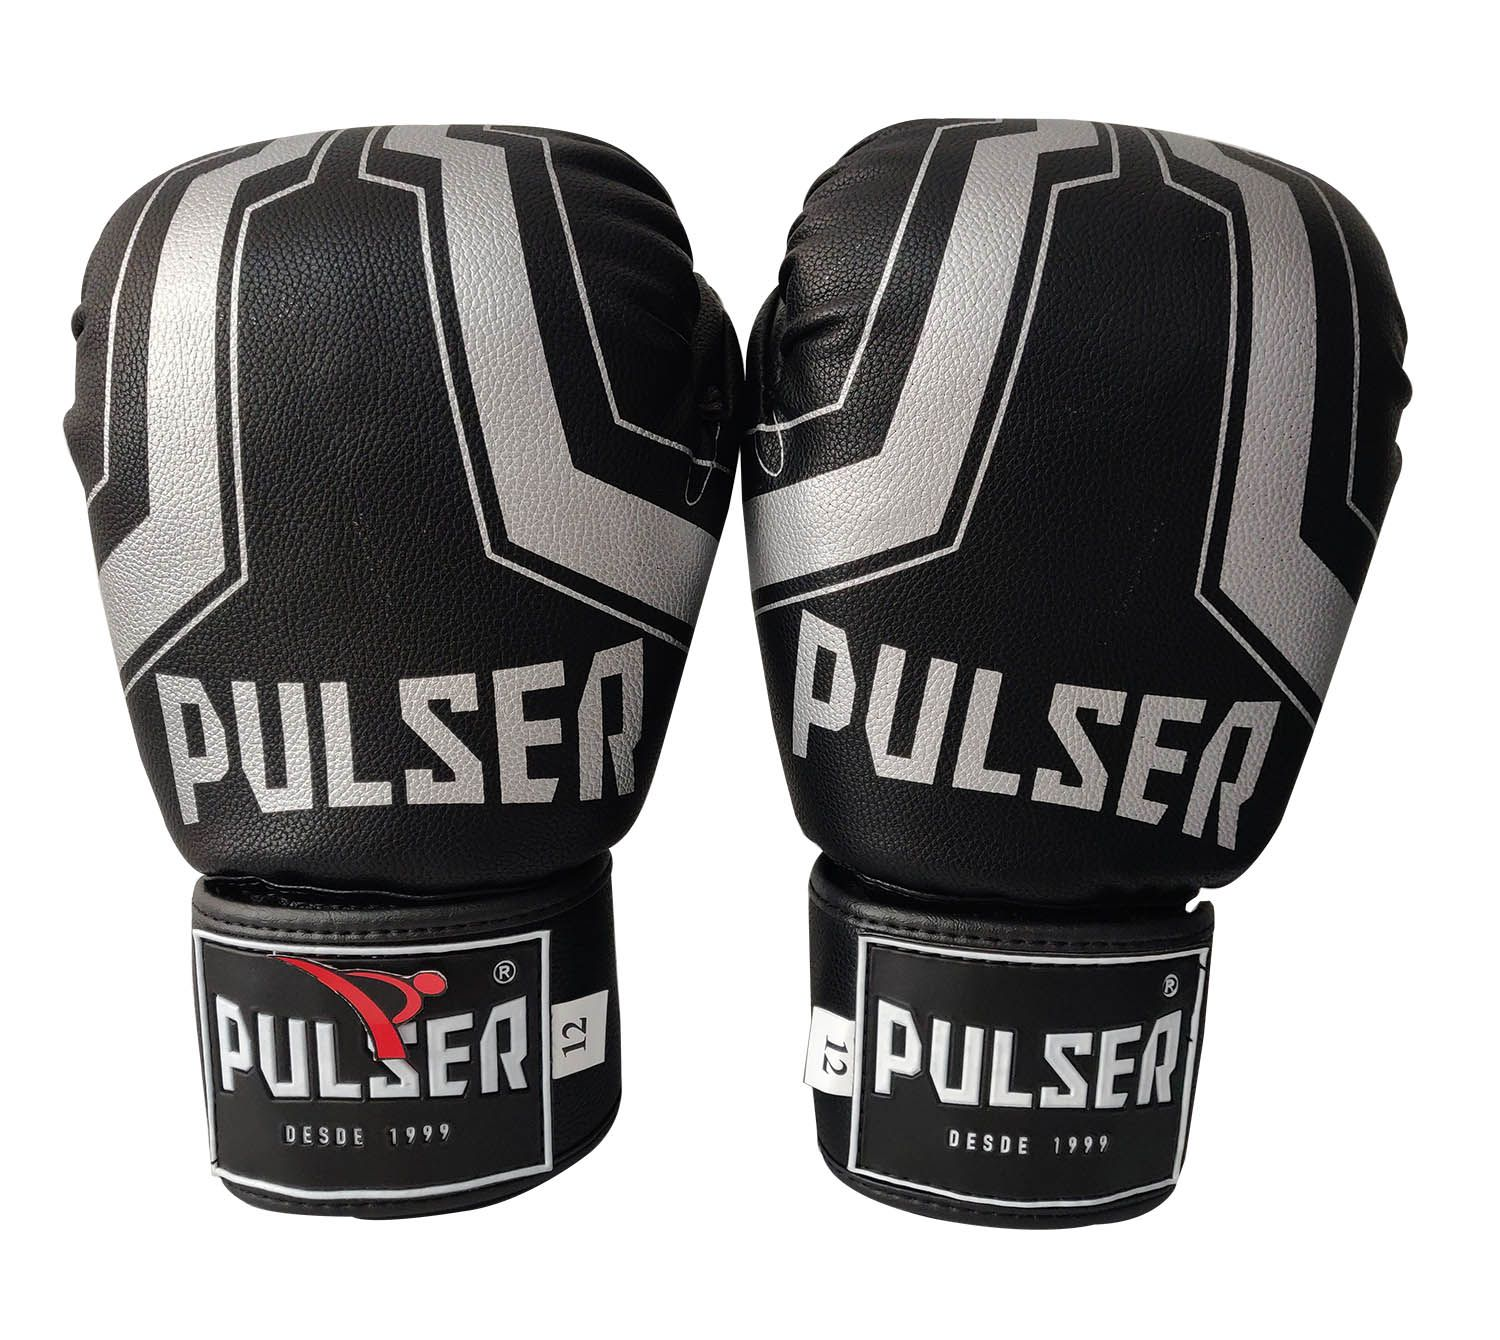 Kit de Muay Thai / Kickboxing 10oz - Iron Preto - Pulser  - PRALUTA SHOP